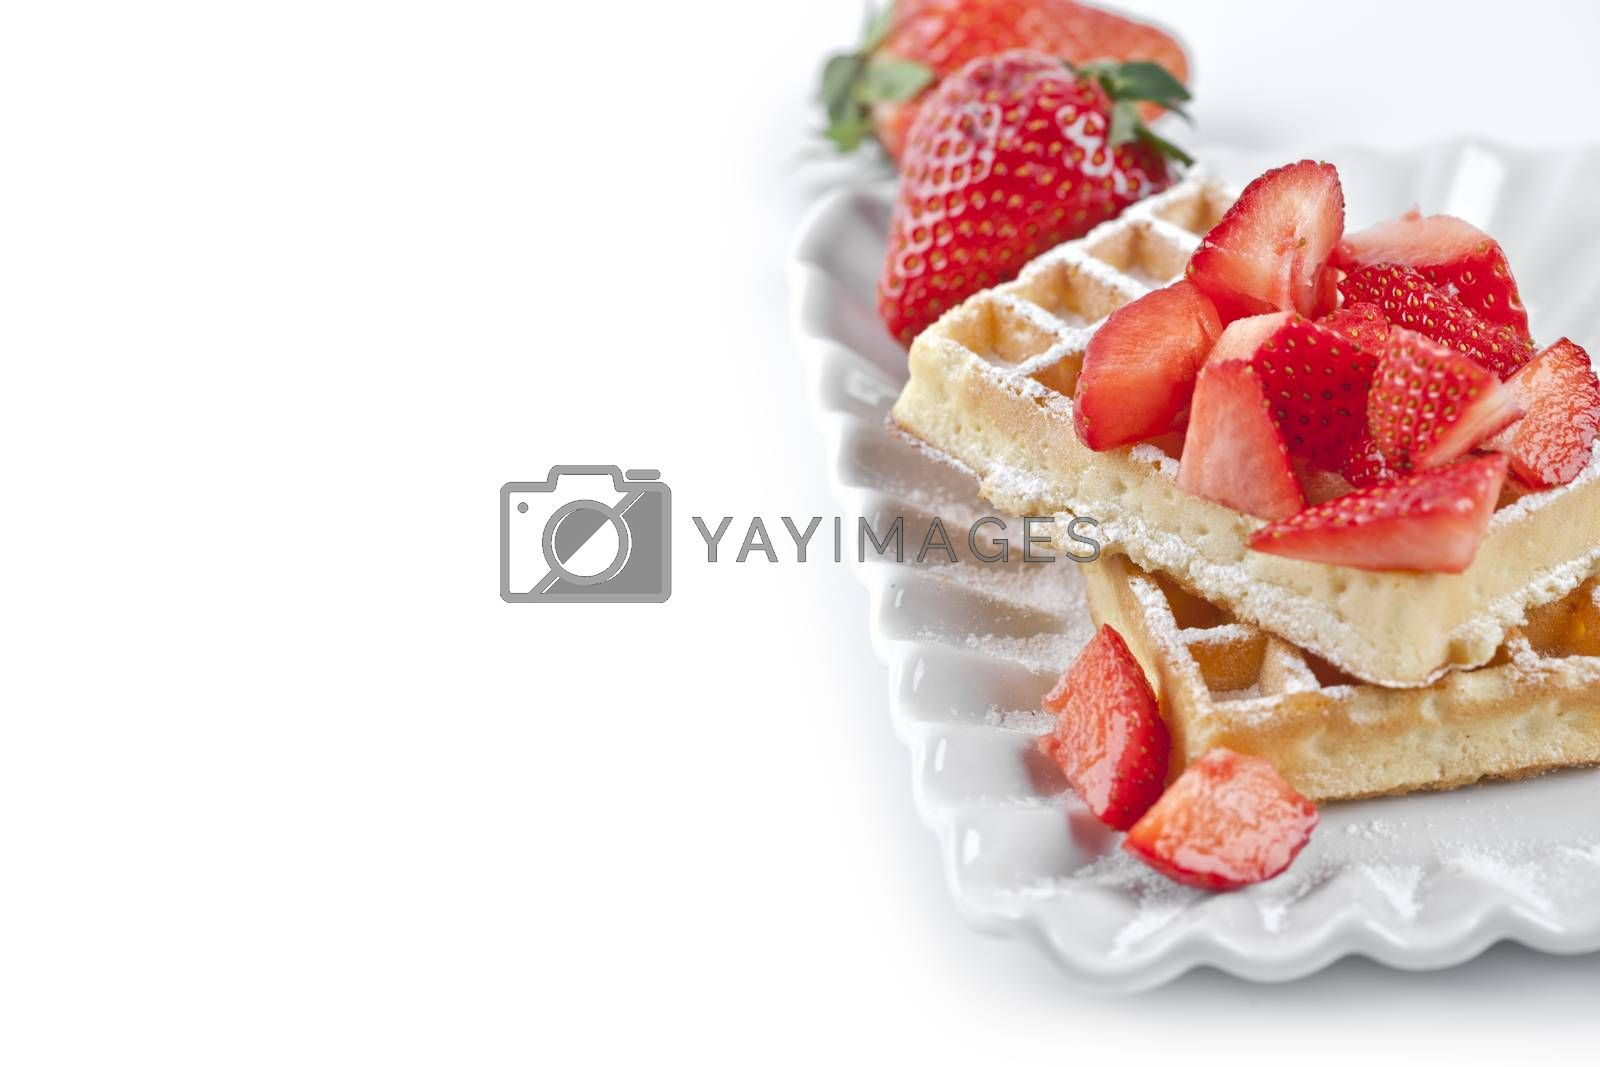 Belgium waffers with sugar powder and strawberries on ceramic plate on white table. Fresh baked wafers with copy space.